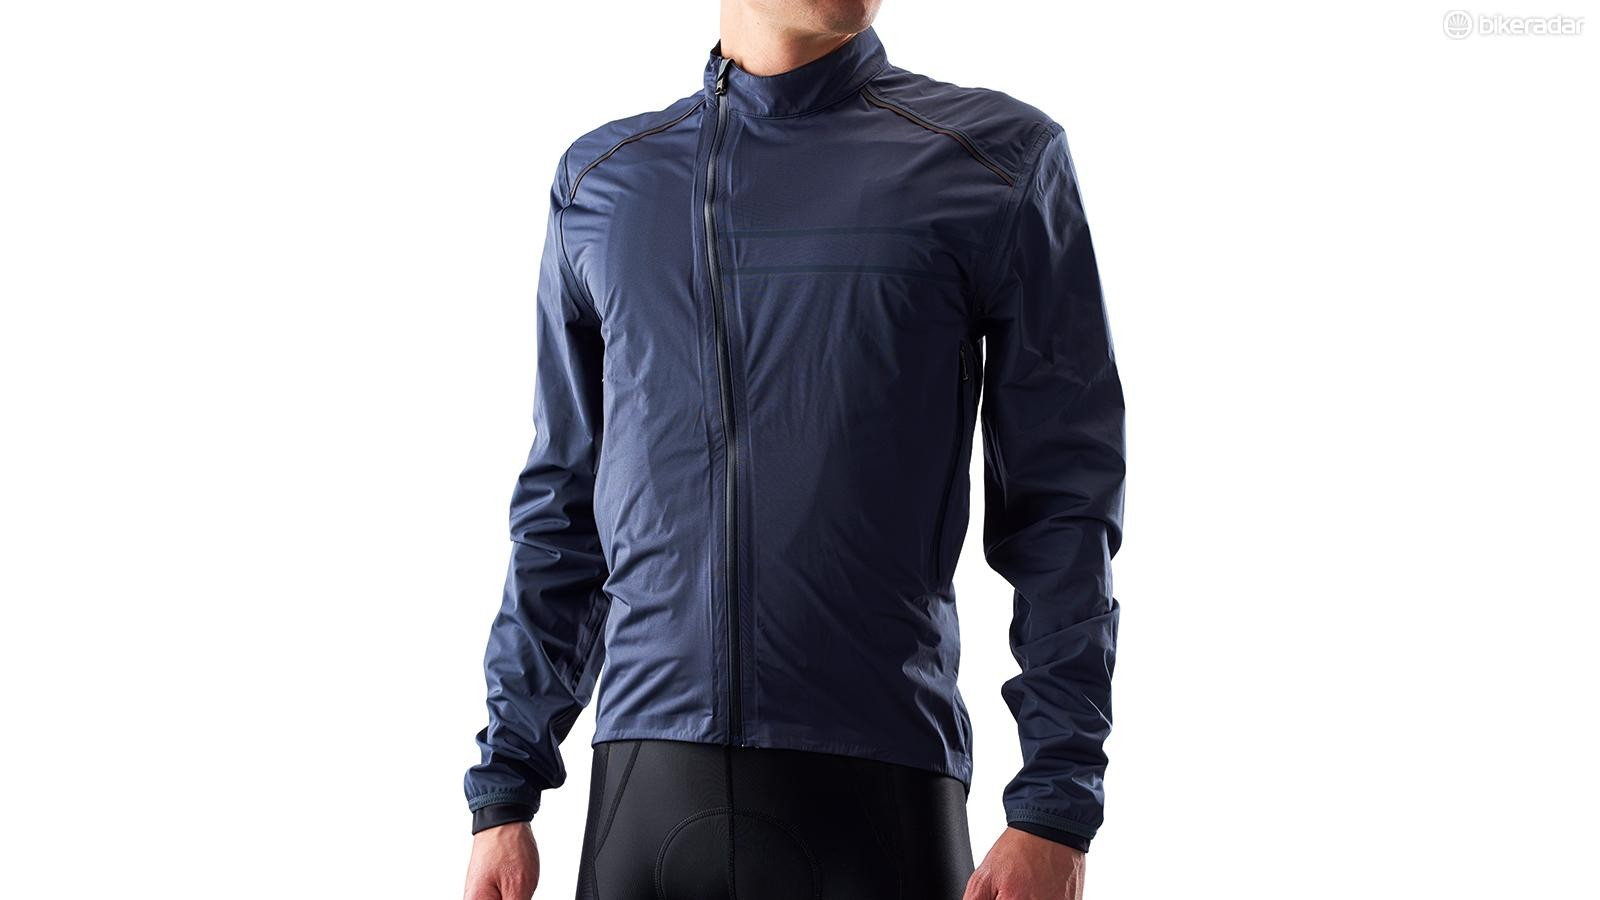 The Ashmei waterproof jacket is stretchier than most